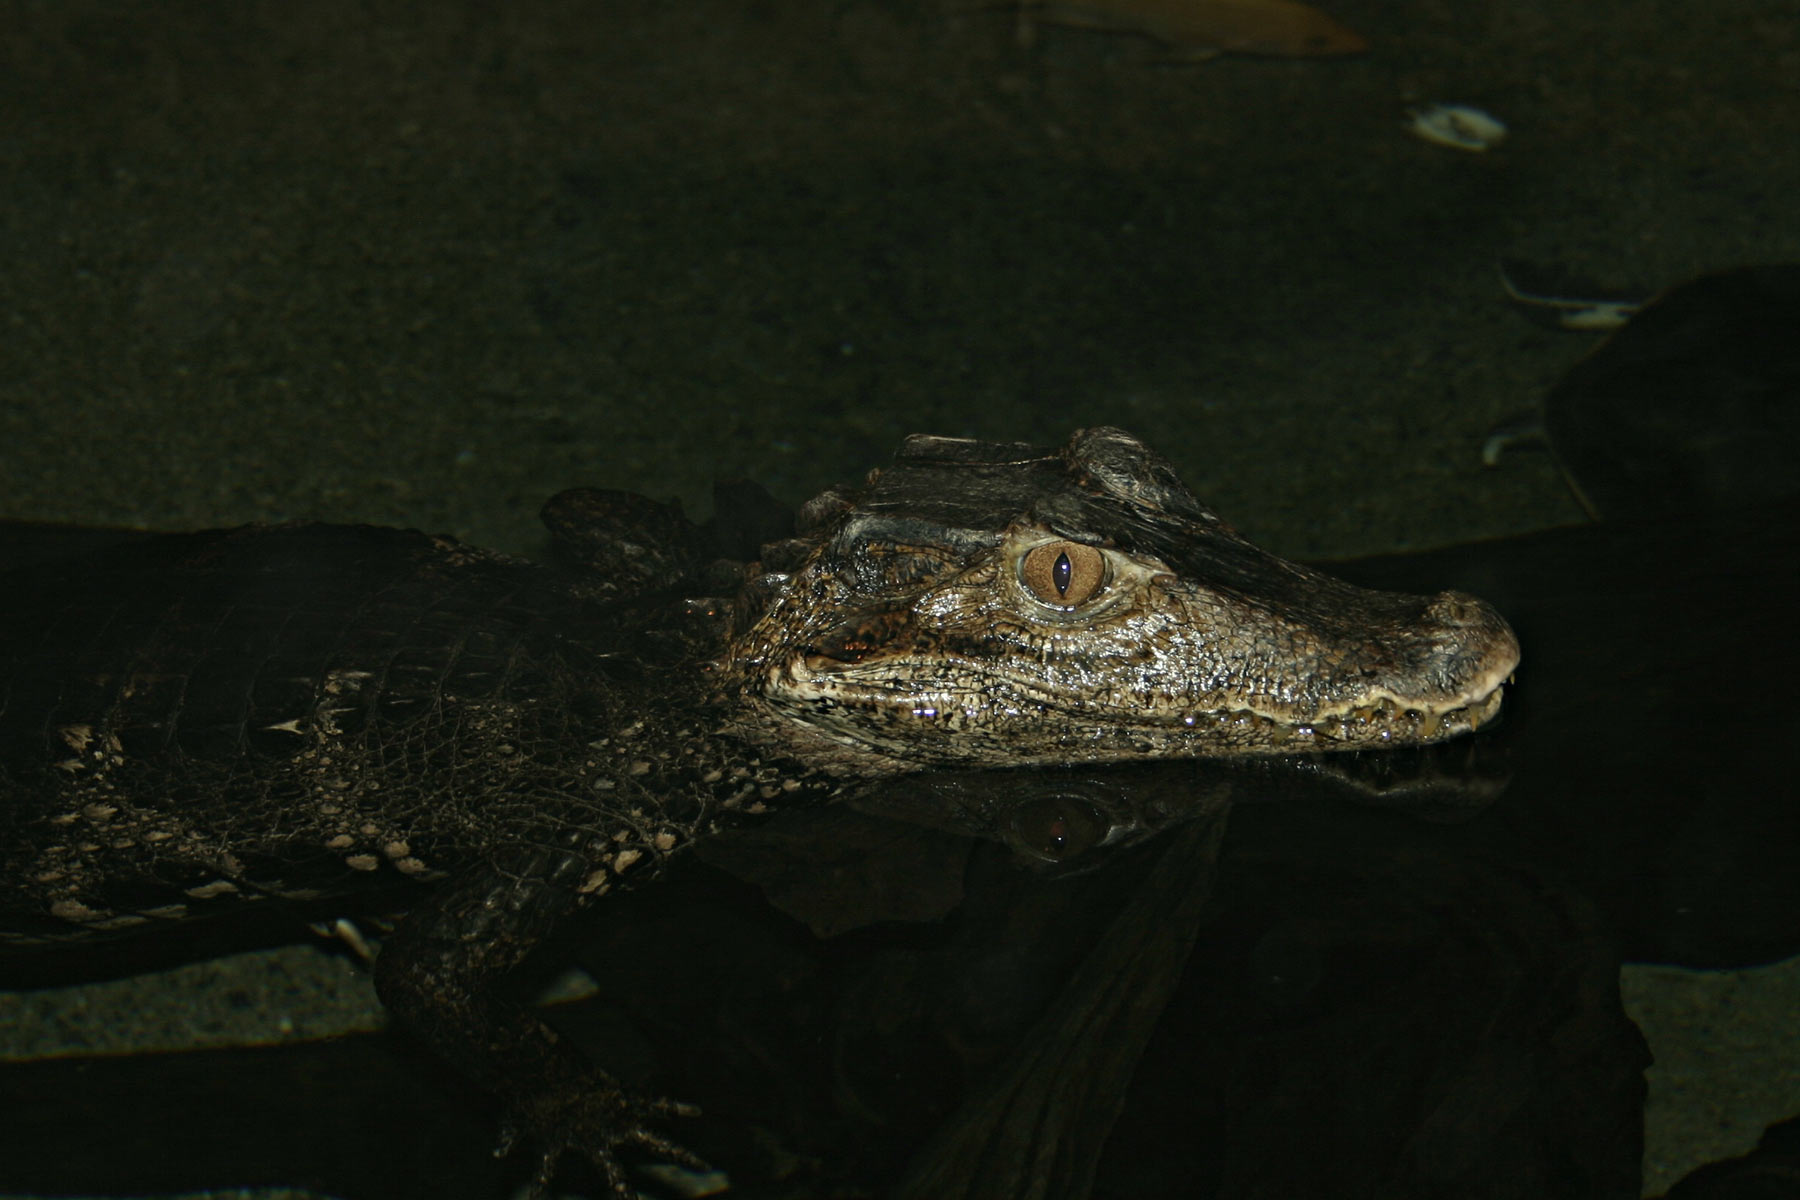 Crocodile, Swimming, Zoo, Reptile, Animal, HQ Photo